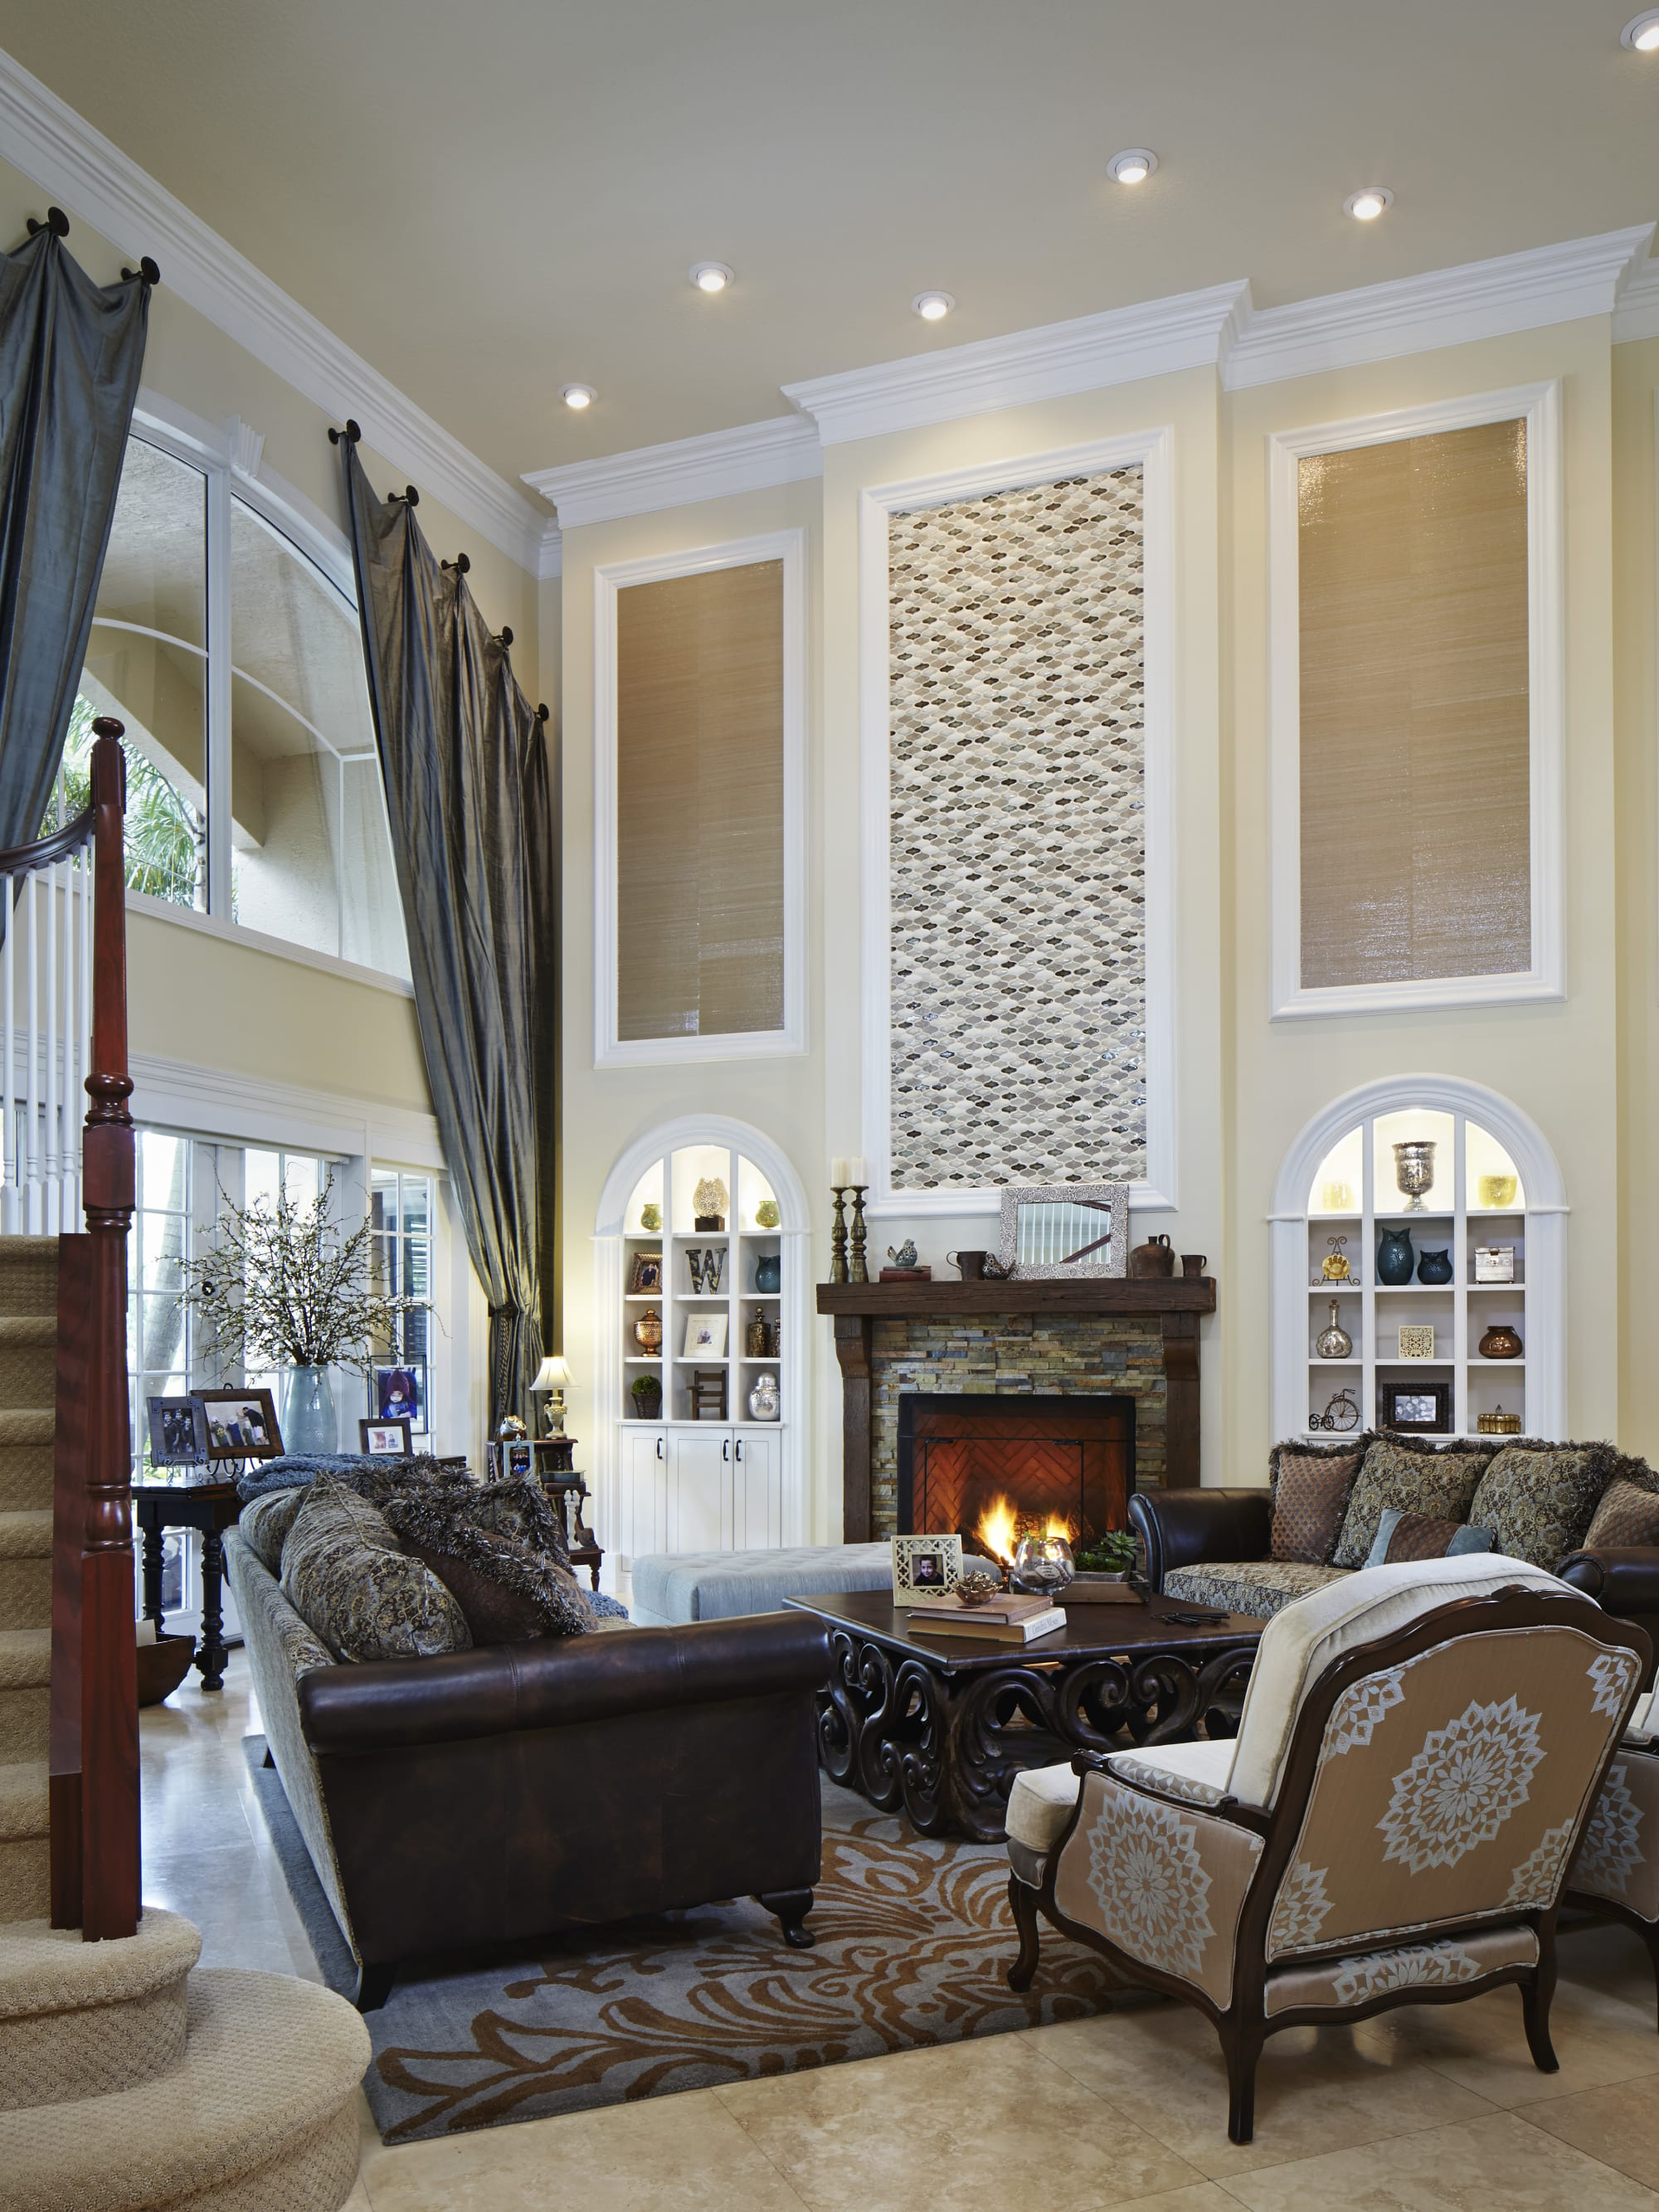 Interior Design by Jaime Blomquist Interiors seen at Private Residence, Davie - Rustic Transitional Retreat